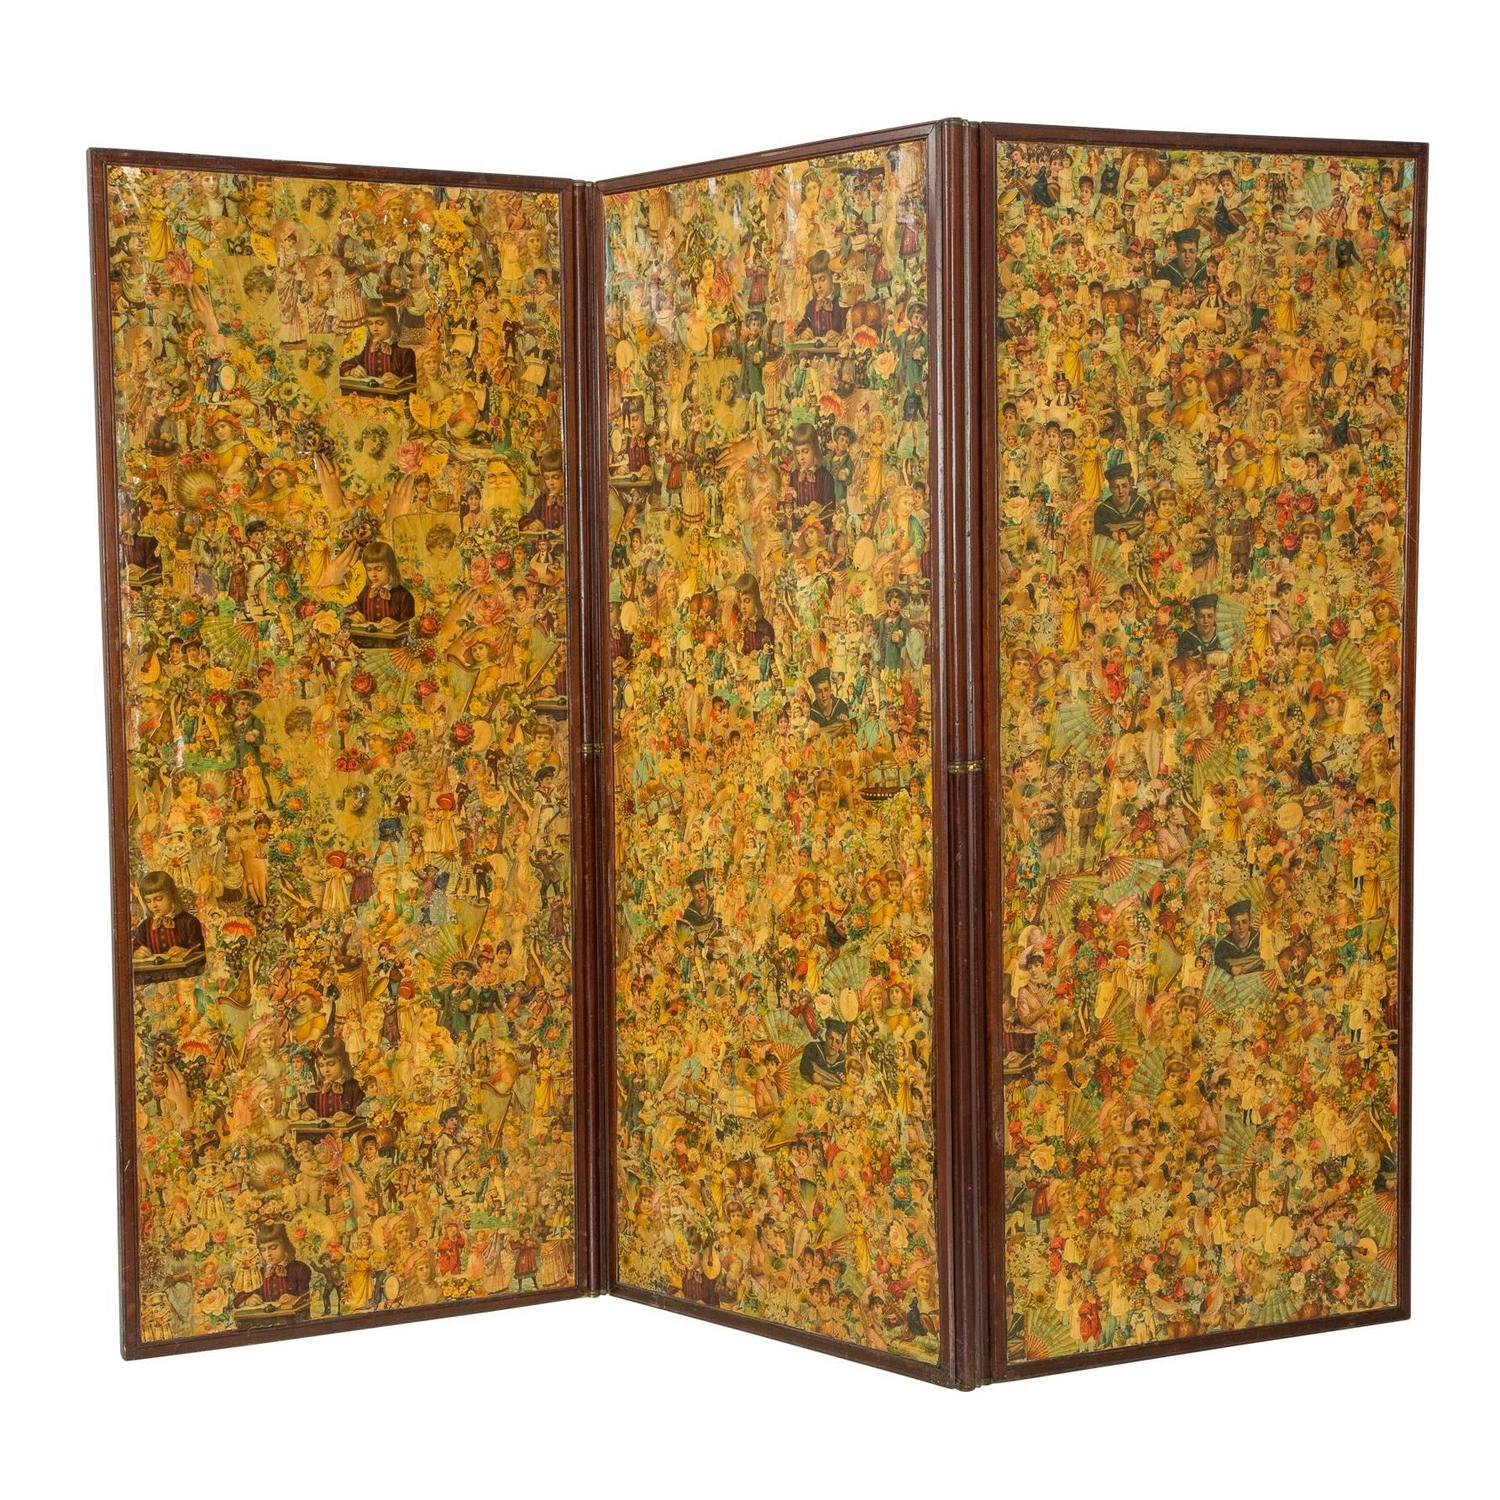 Three Paneled Victorian Decoupaged Room Divider Screen